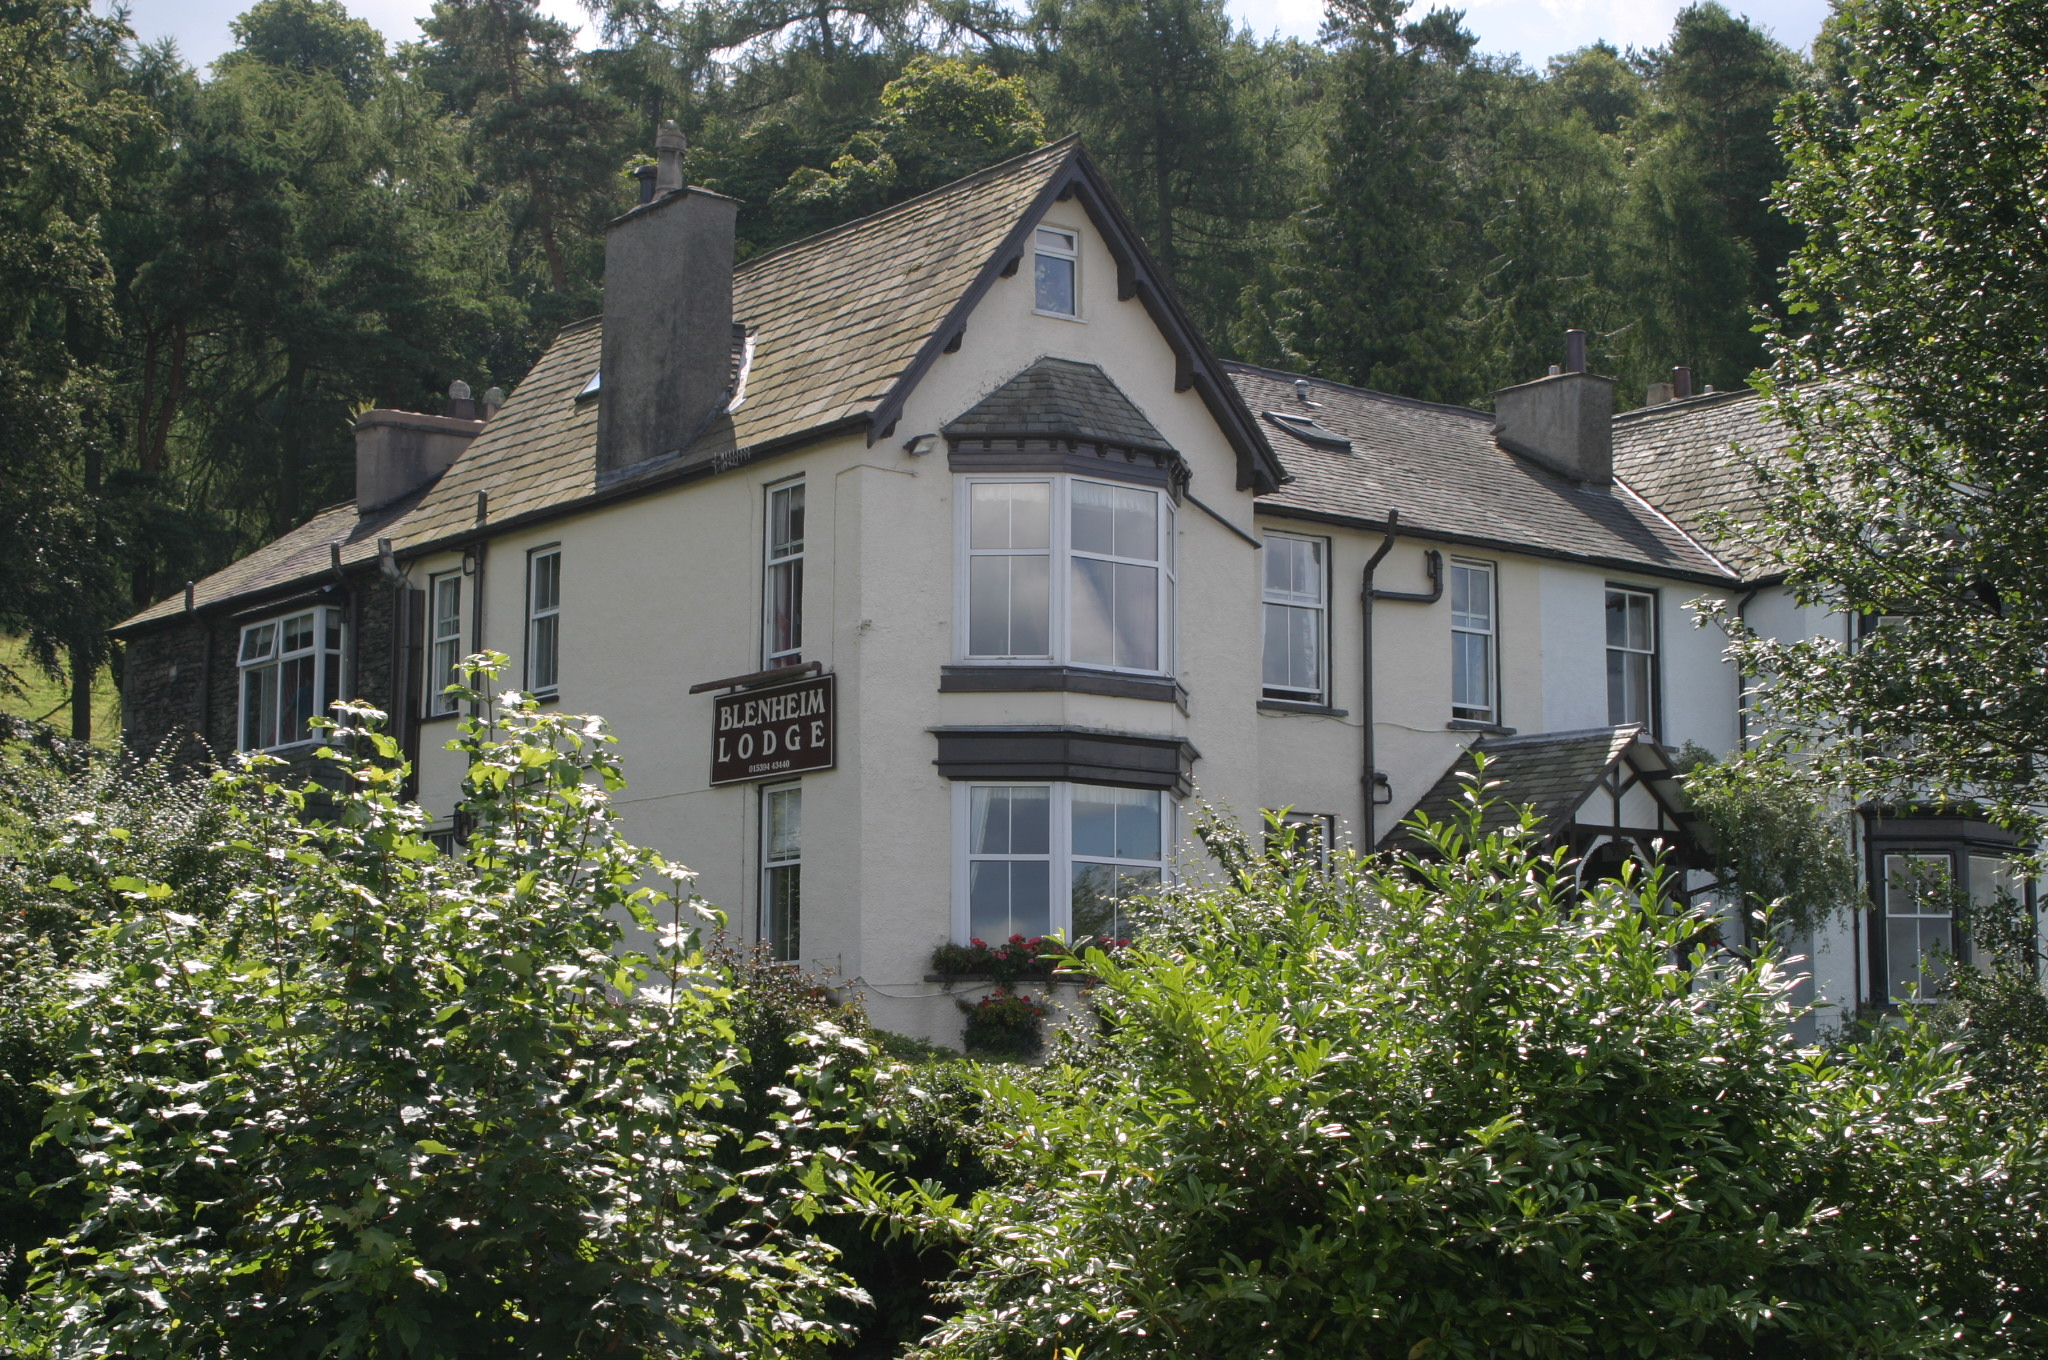 Blenheim Lodge, a beautifully refurbished guesthouse in Windermere.